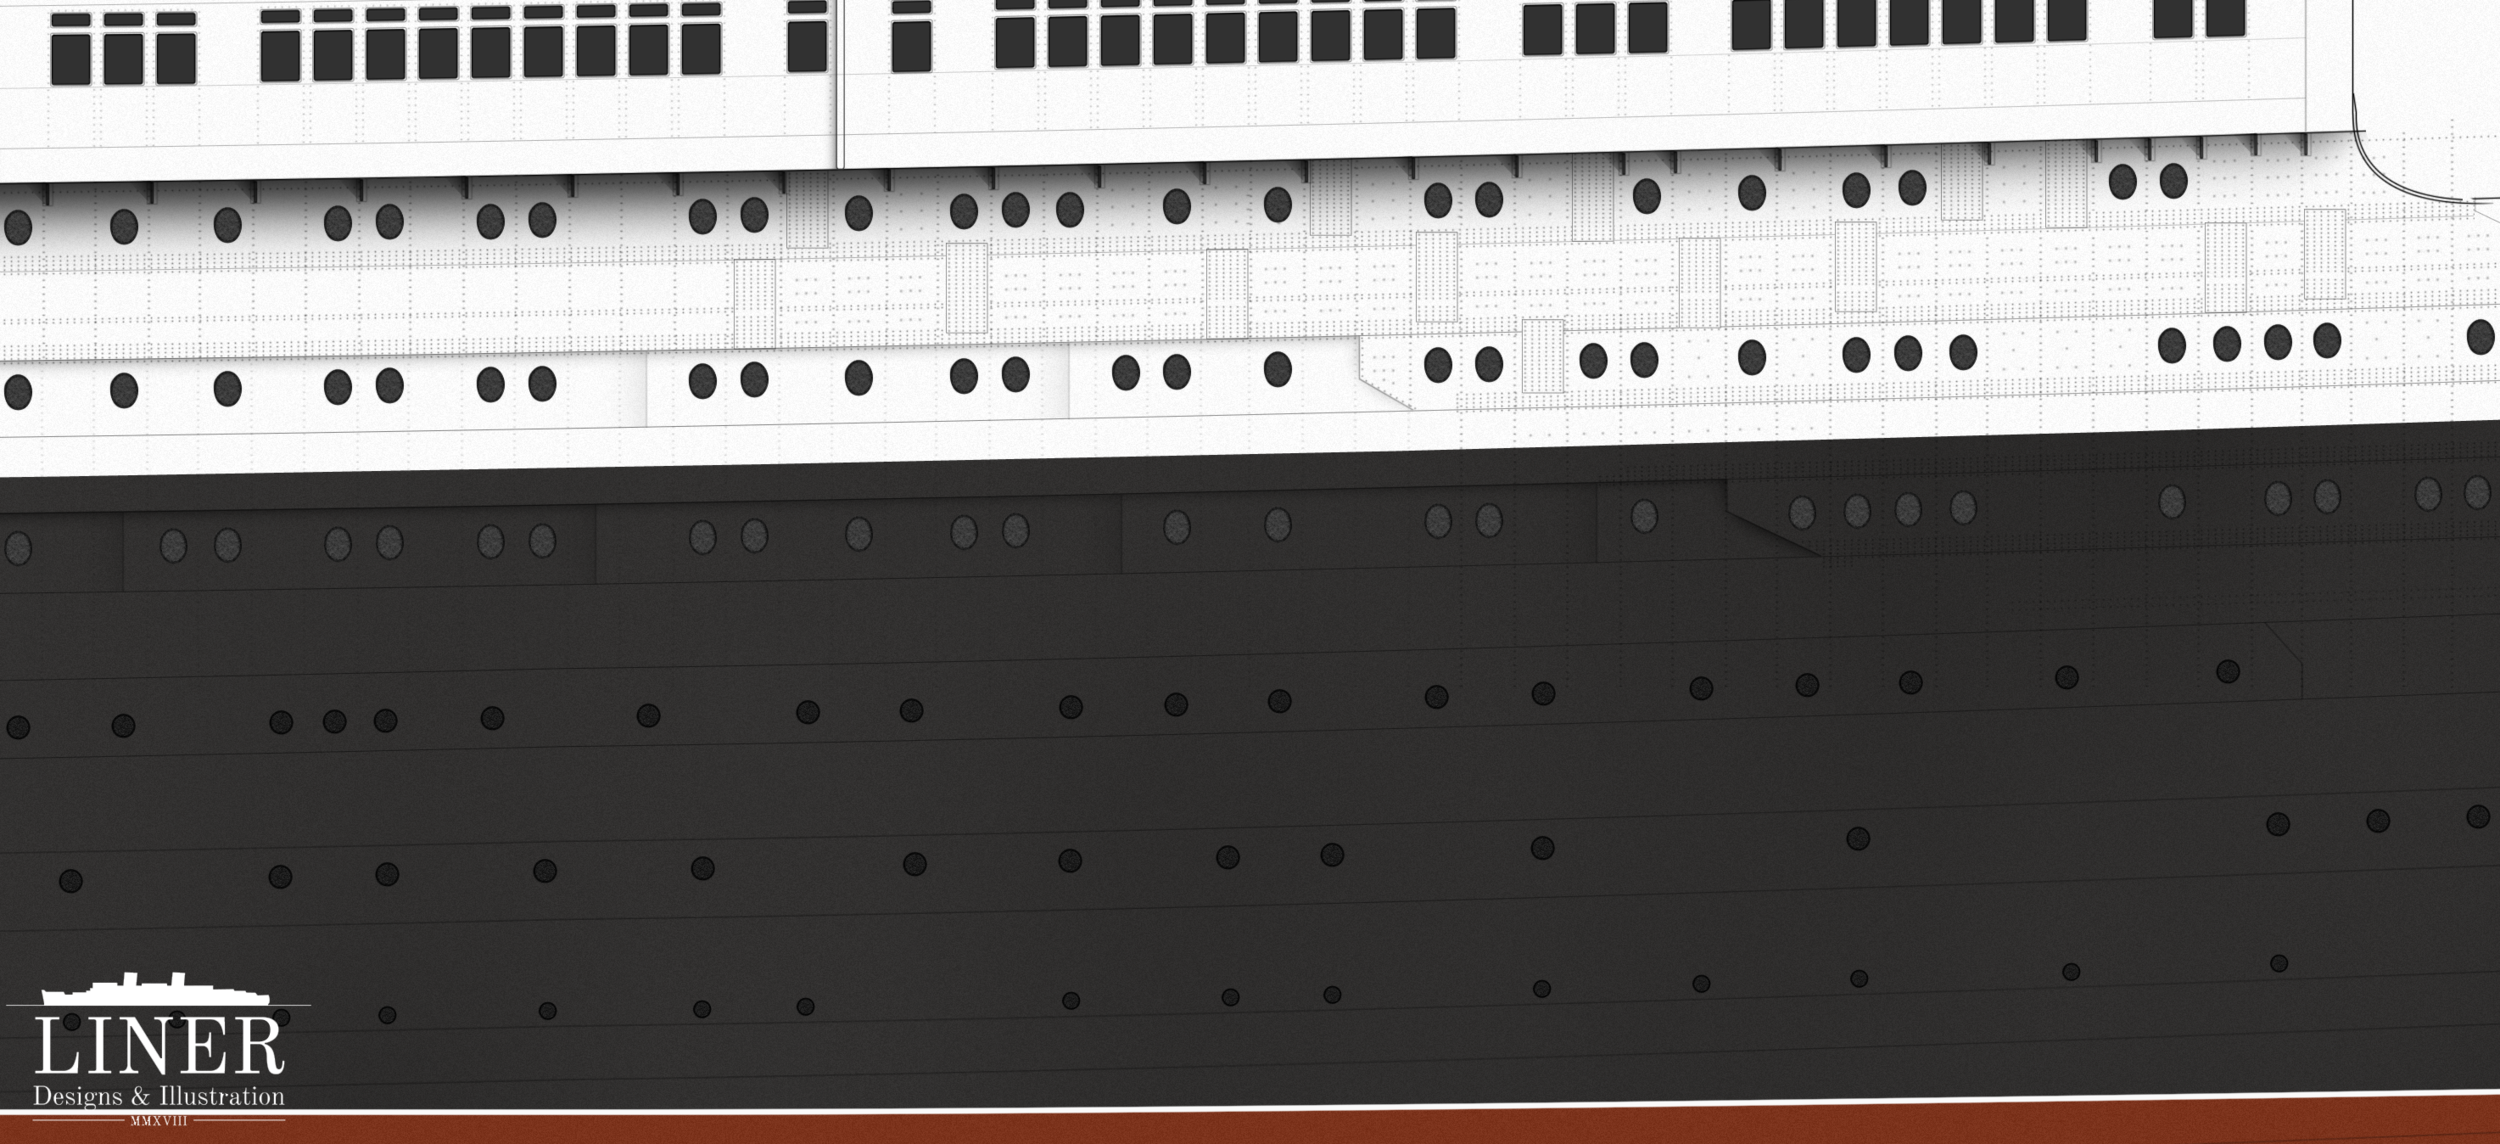 Like an immense cliff-face; Queen Mary's hull.